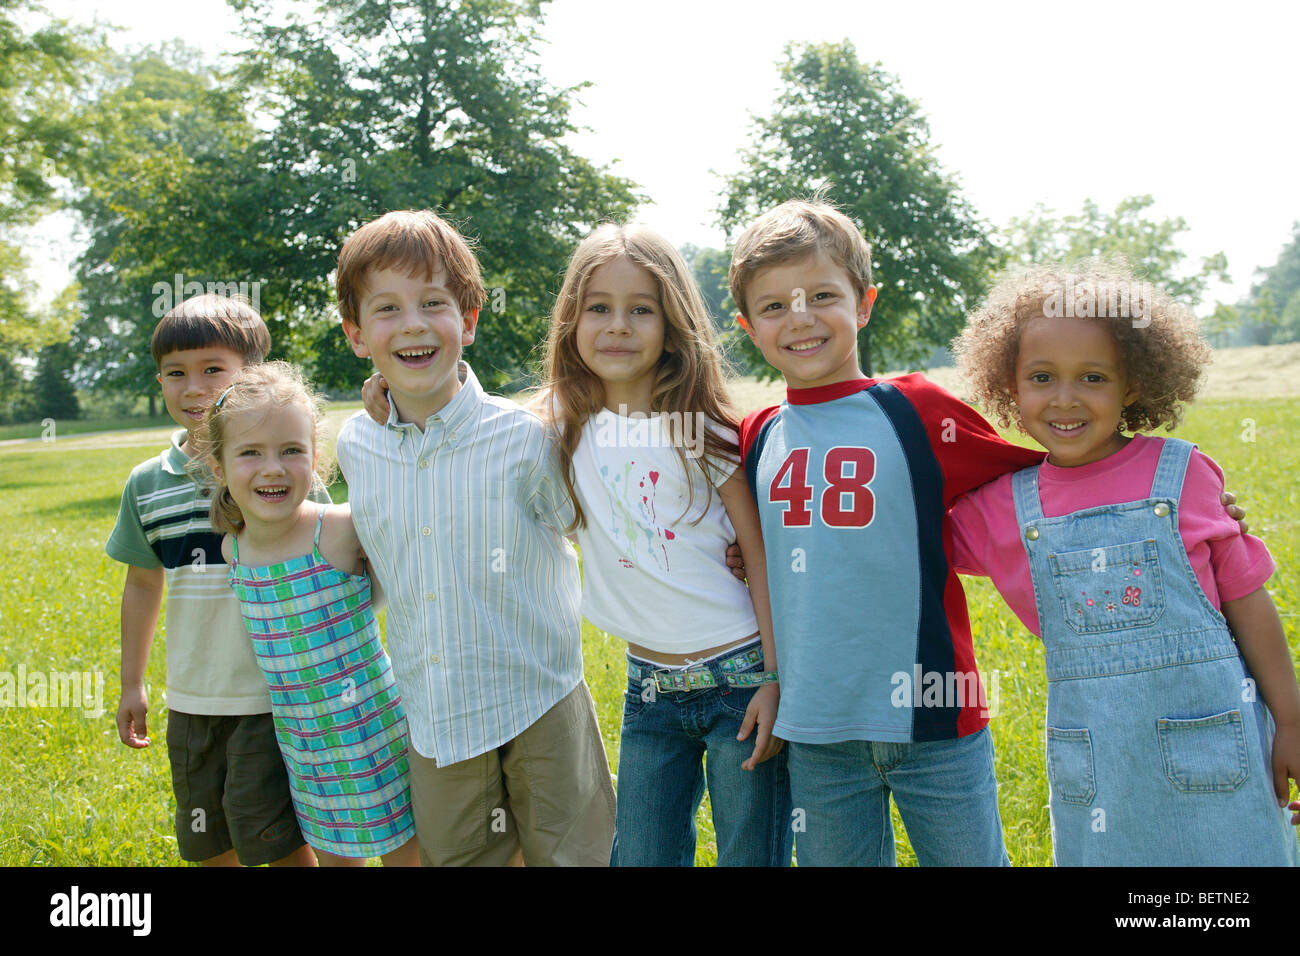 group of six young children in the park standing next to each other